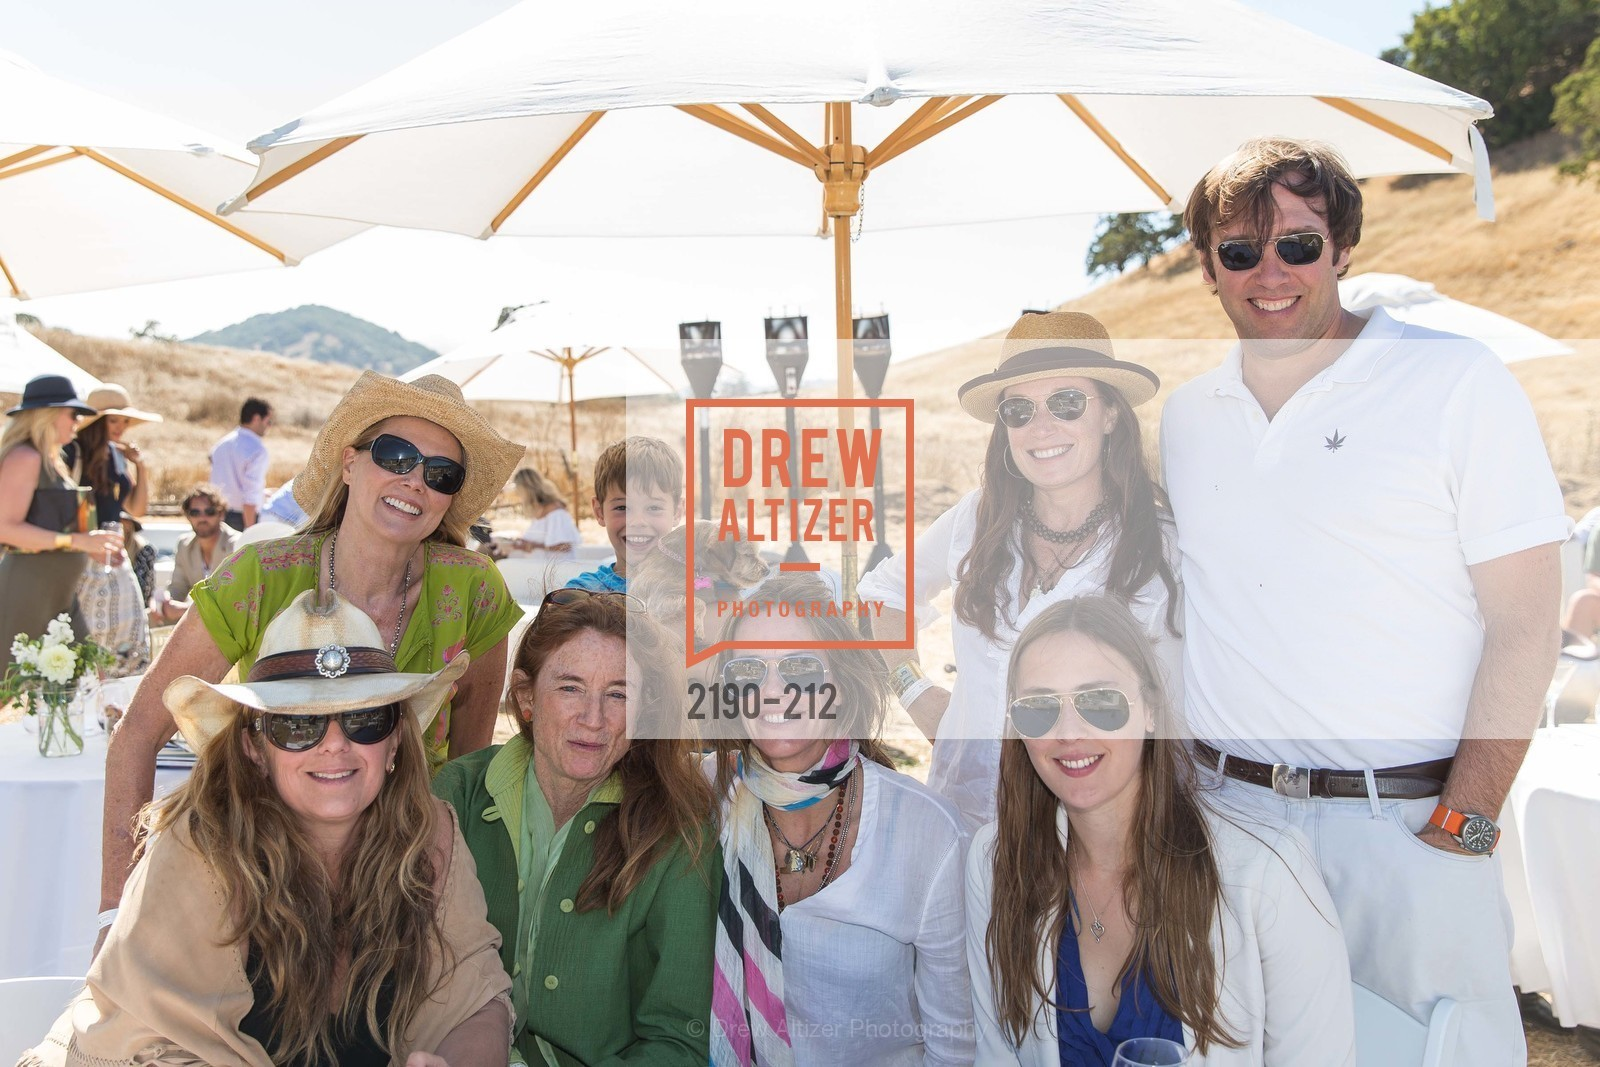 Kit Tobin, Leslie Thieriot, Layla Anderson, Gibson Thomas, Gardner Robinson, Stick & Ball Oyster Cup Polo Tournament, Cerro Pampa Polo Club, July 25th, 2015,Drew Altizer, Drew Altizer Photography, full-service agency, private events, San Francisco photographer, photographer california